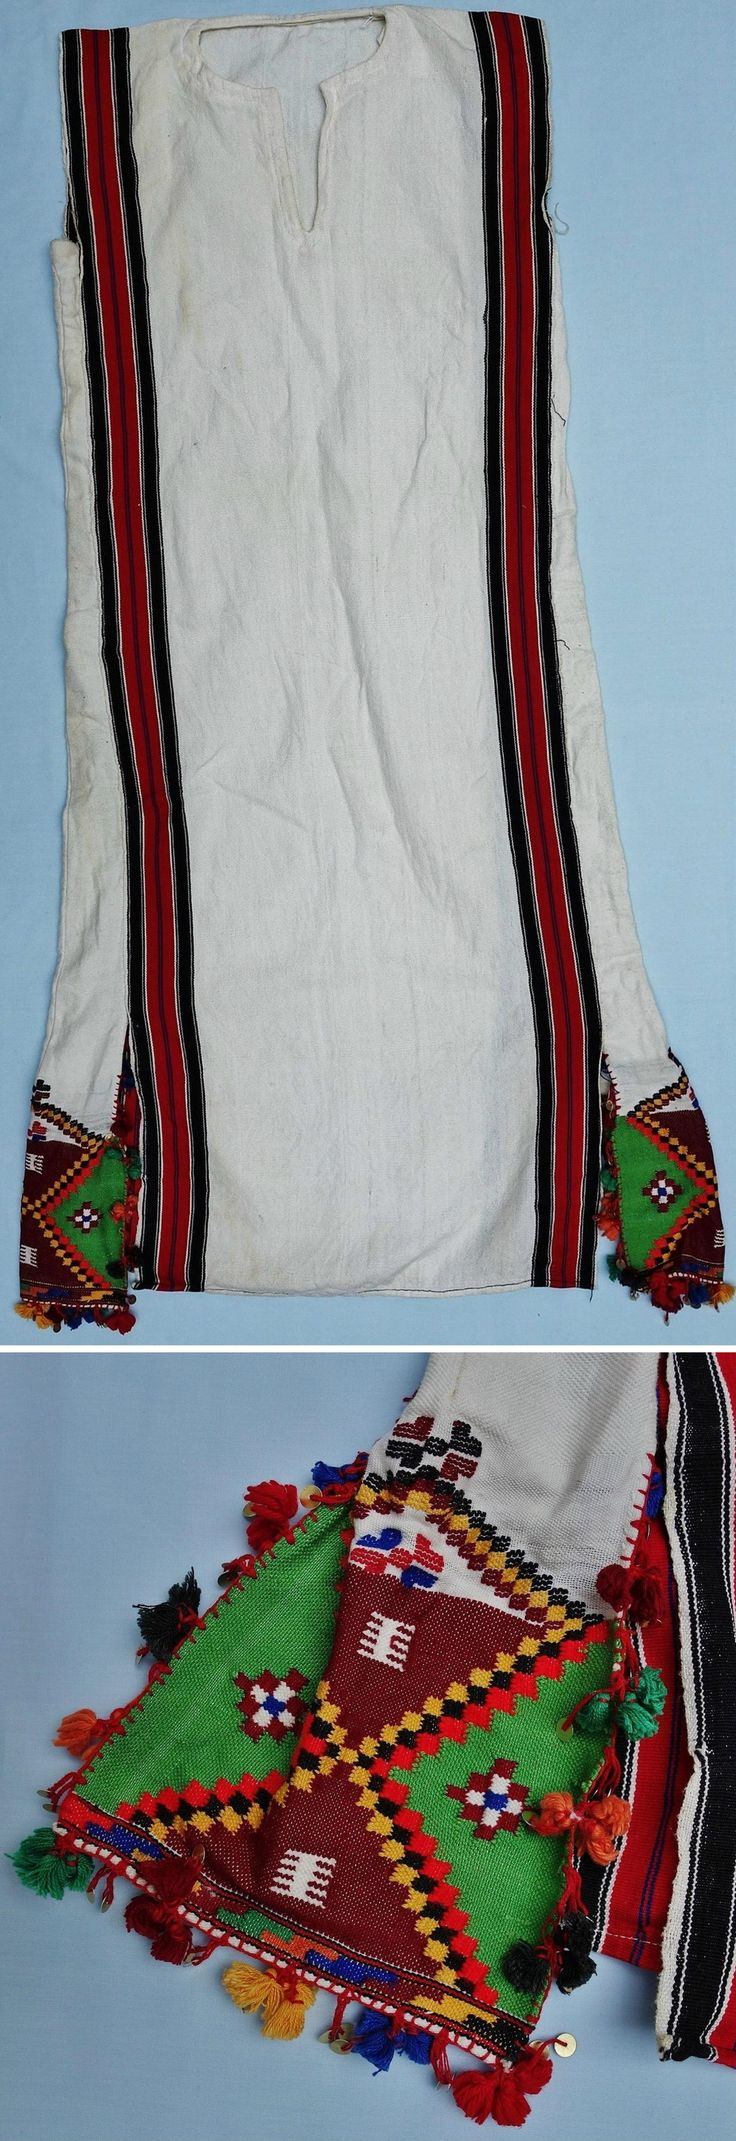 Cotton robe, from the Rhodopi mountains (around the town of Chepelare, Smolyan region) in southern Bulgaria.  Pomak, ca. 1980. Rural woman's dress with selvedge bands in black, white and red, and two woven blocks of decoration based on triangles and squares in dark red, green, yellow, black & mid-red. Around three edges of these woven blocks is an applied band of multi-coloured tassels with metal sequins.  The sleeves are missing.  (Textile Research Center, Leiden).